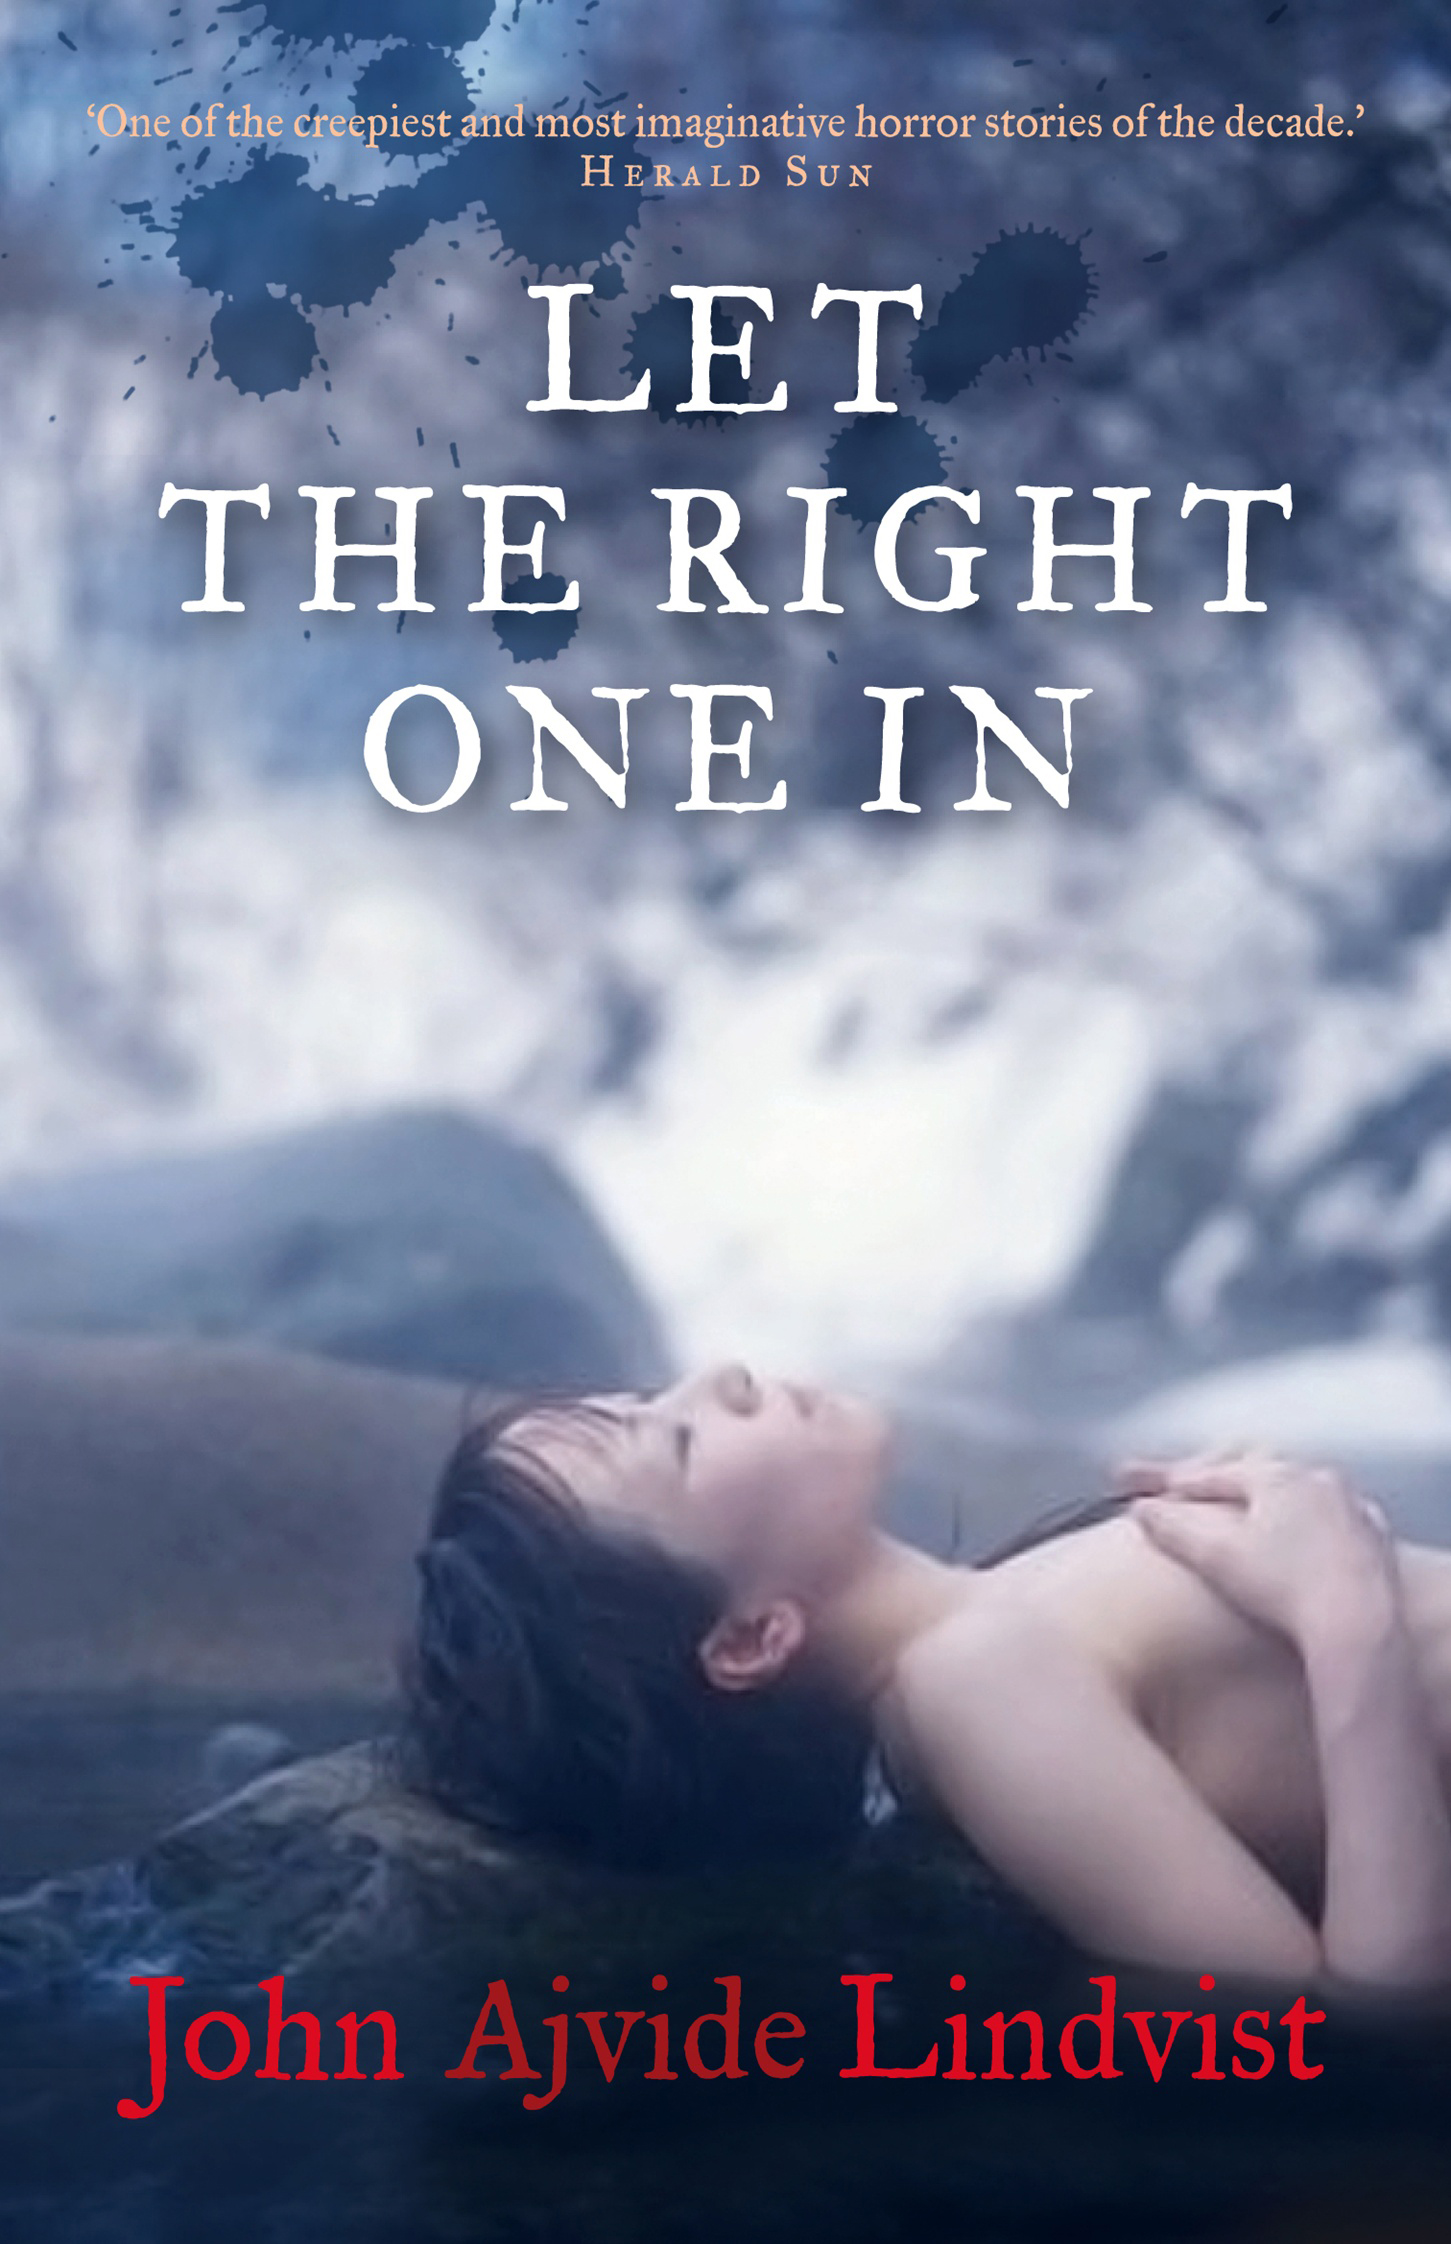 John Ajvide Lindqvist $2999 · Let The Right One In